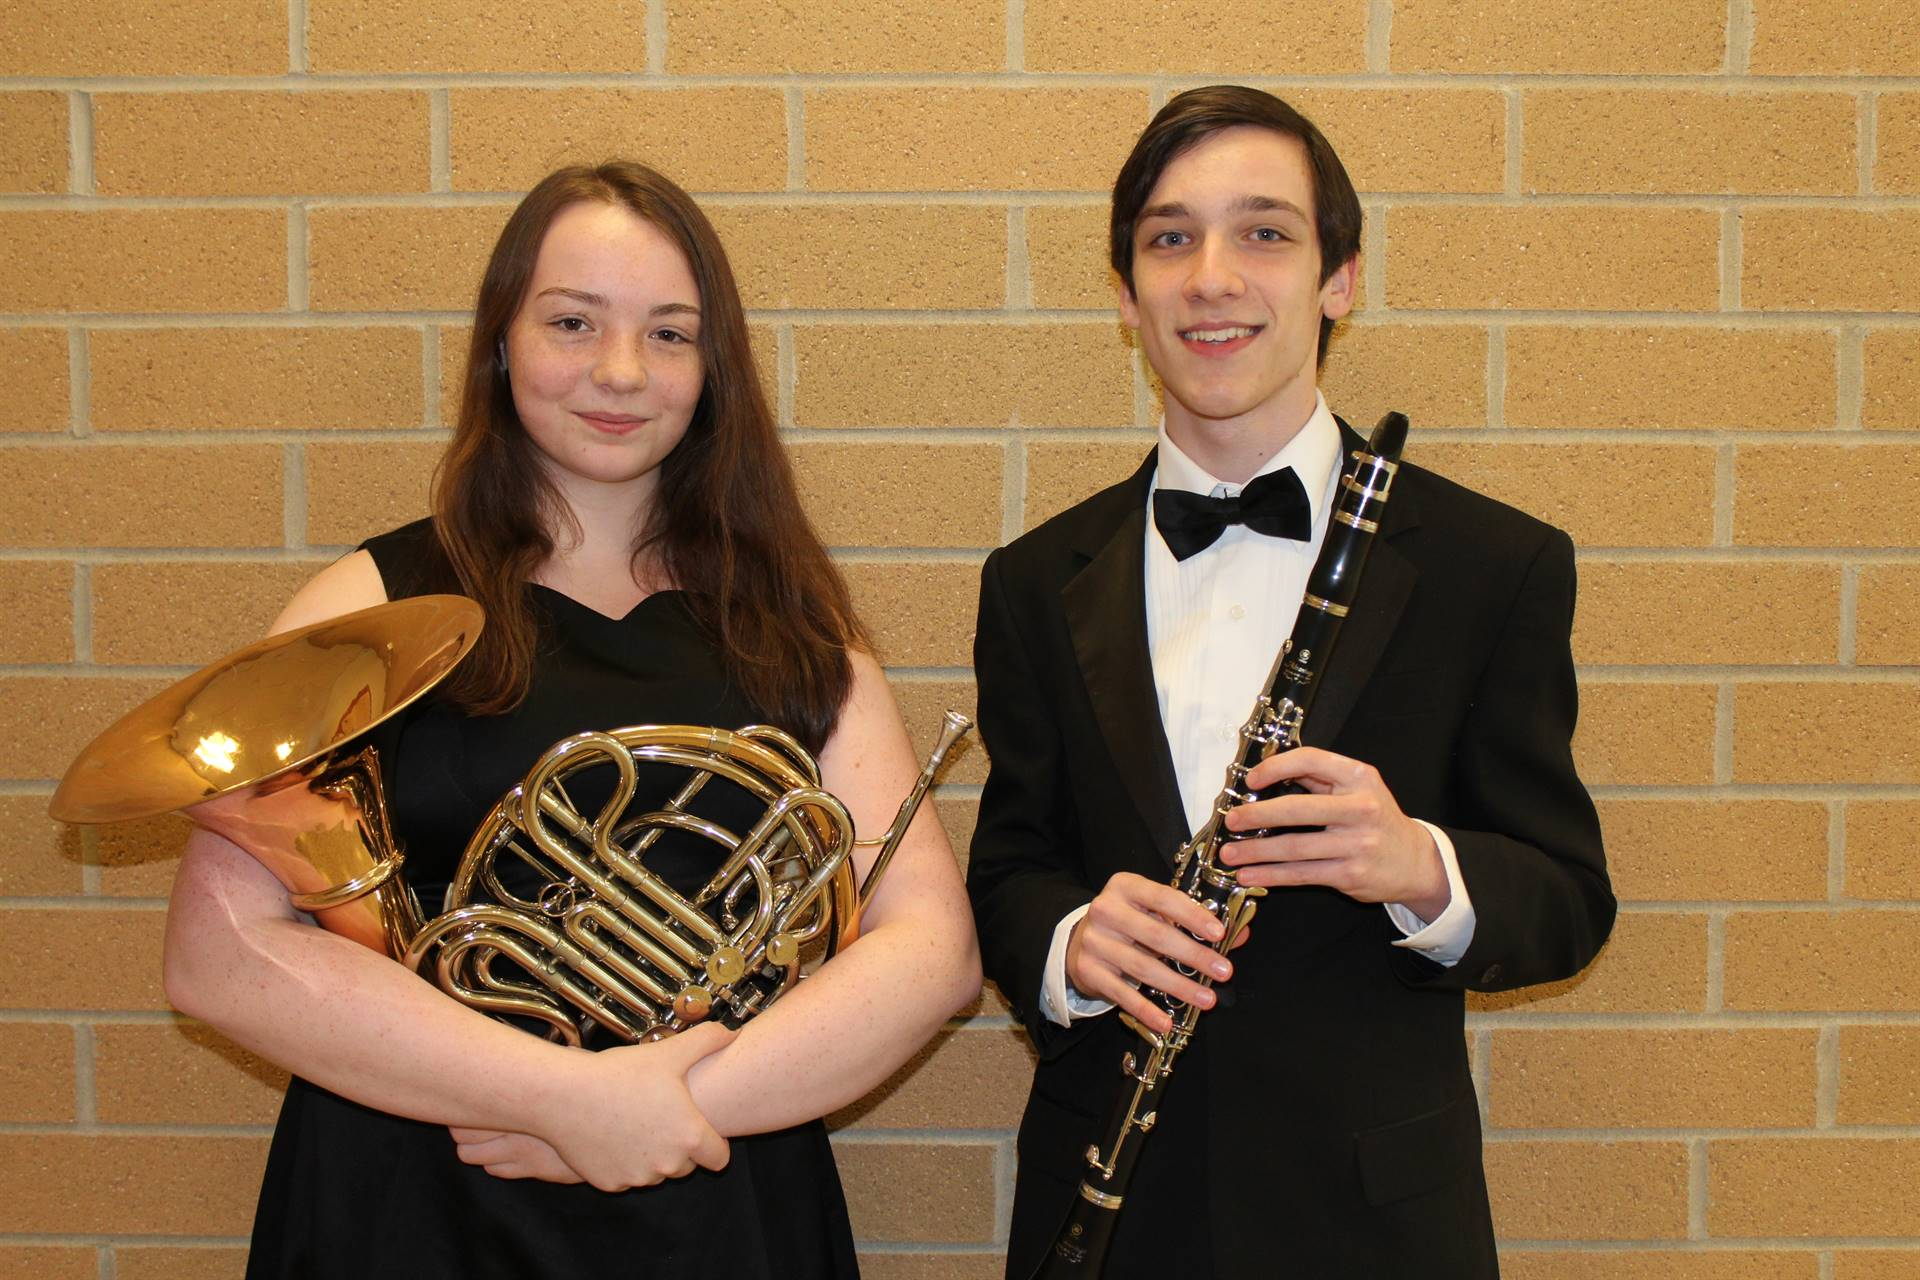 The two BPHS All-State Band Musicians